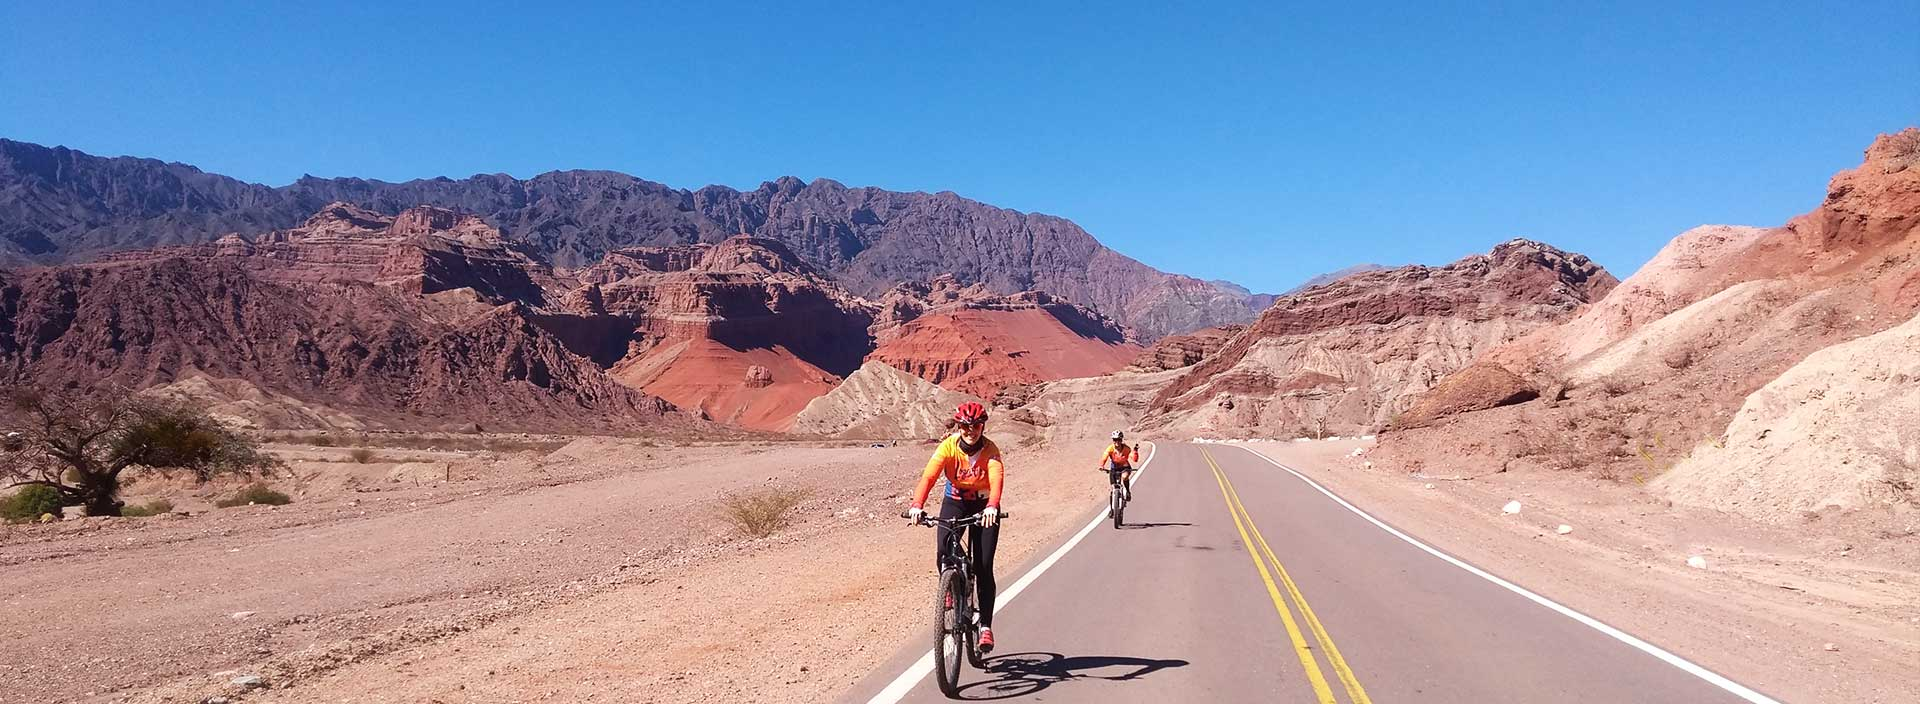 Salta Biking, Valles Calchaquies